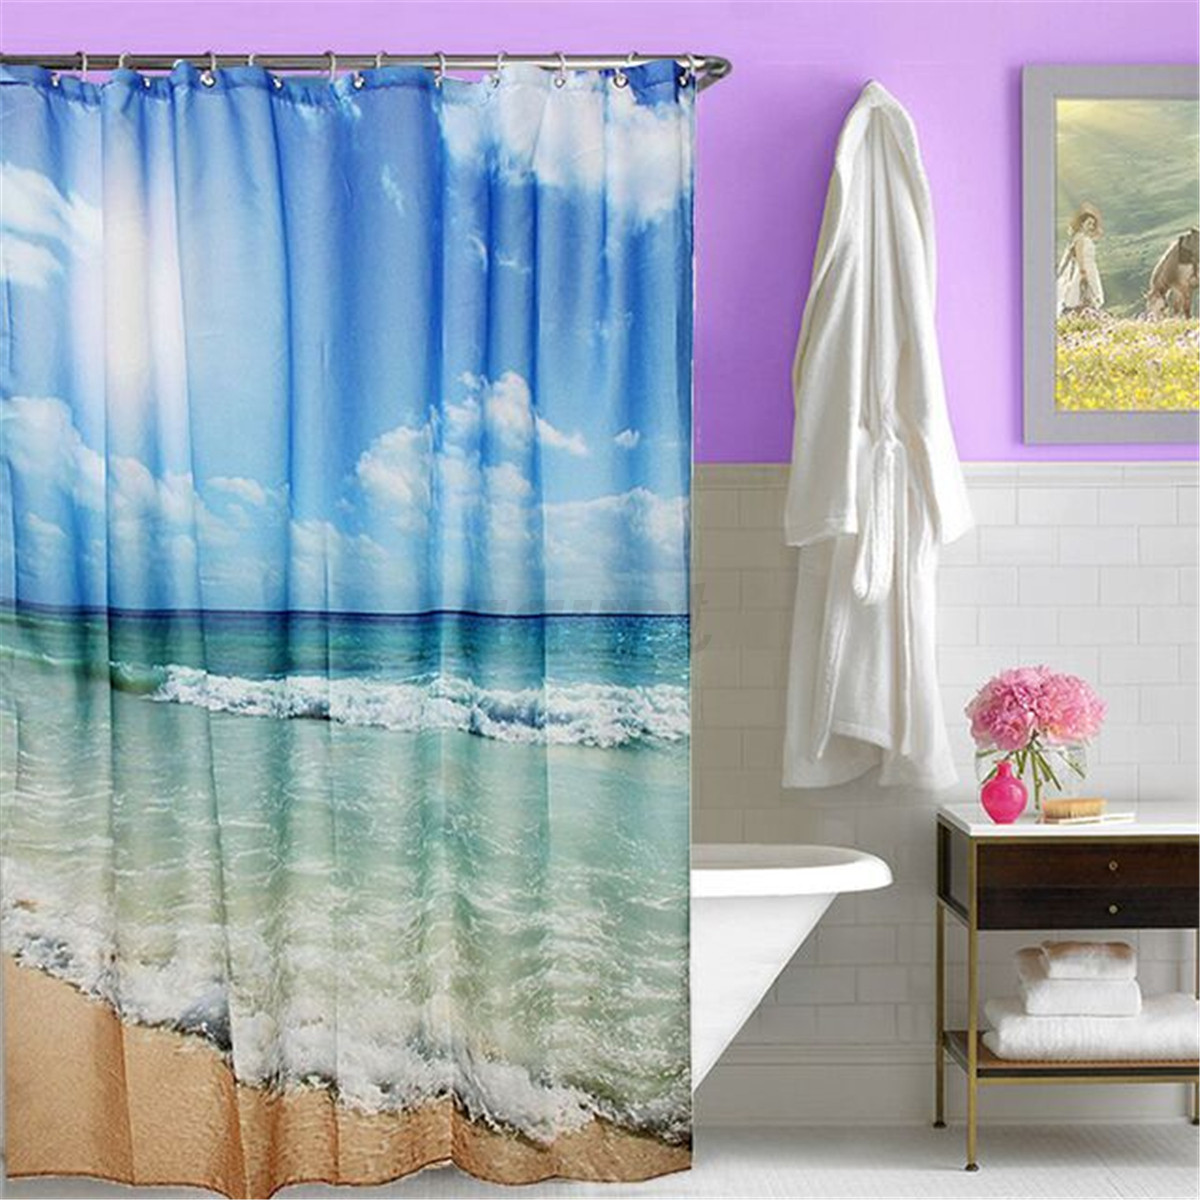 Bathroom Shower Curtains And Accessories Various Shower Curtain Waterproof Polyester Fabric